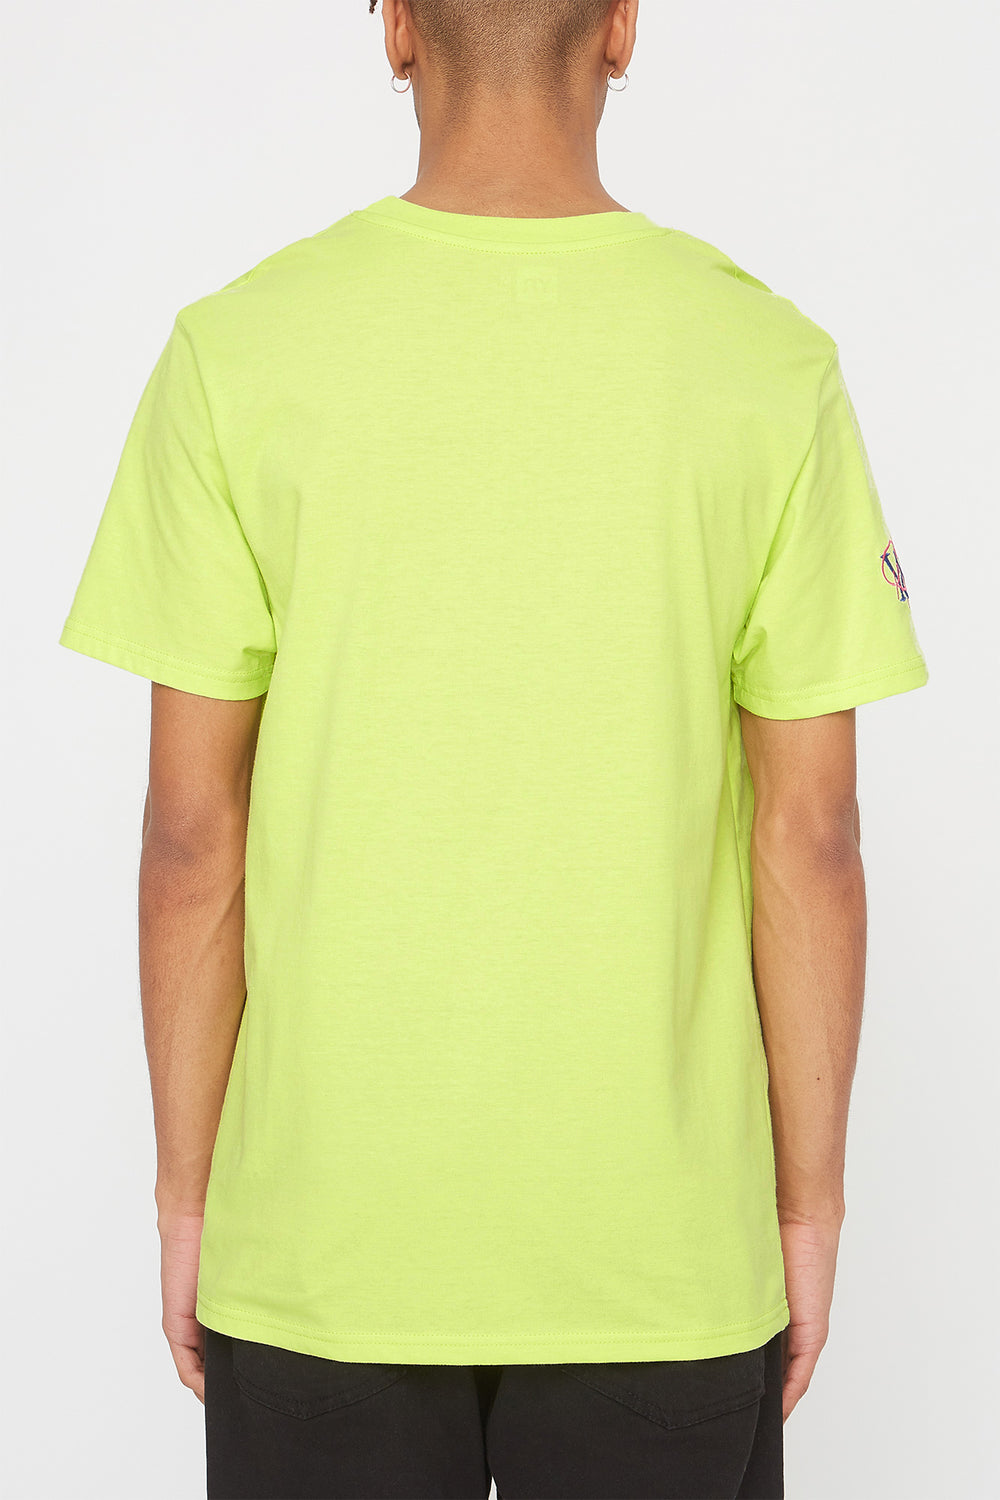 T-Shirt Logos Brodés Young & Reckless Homme Vert fluo